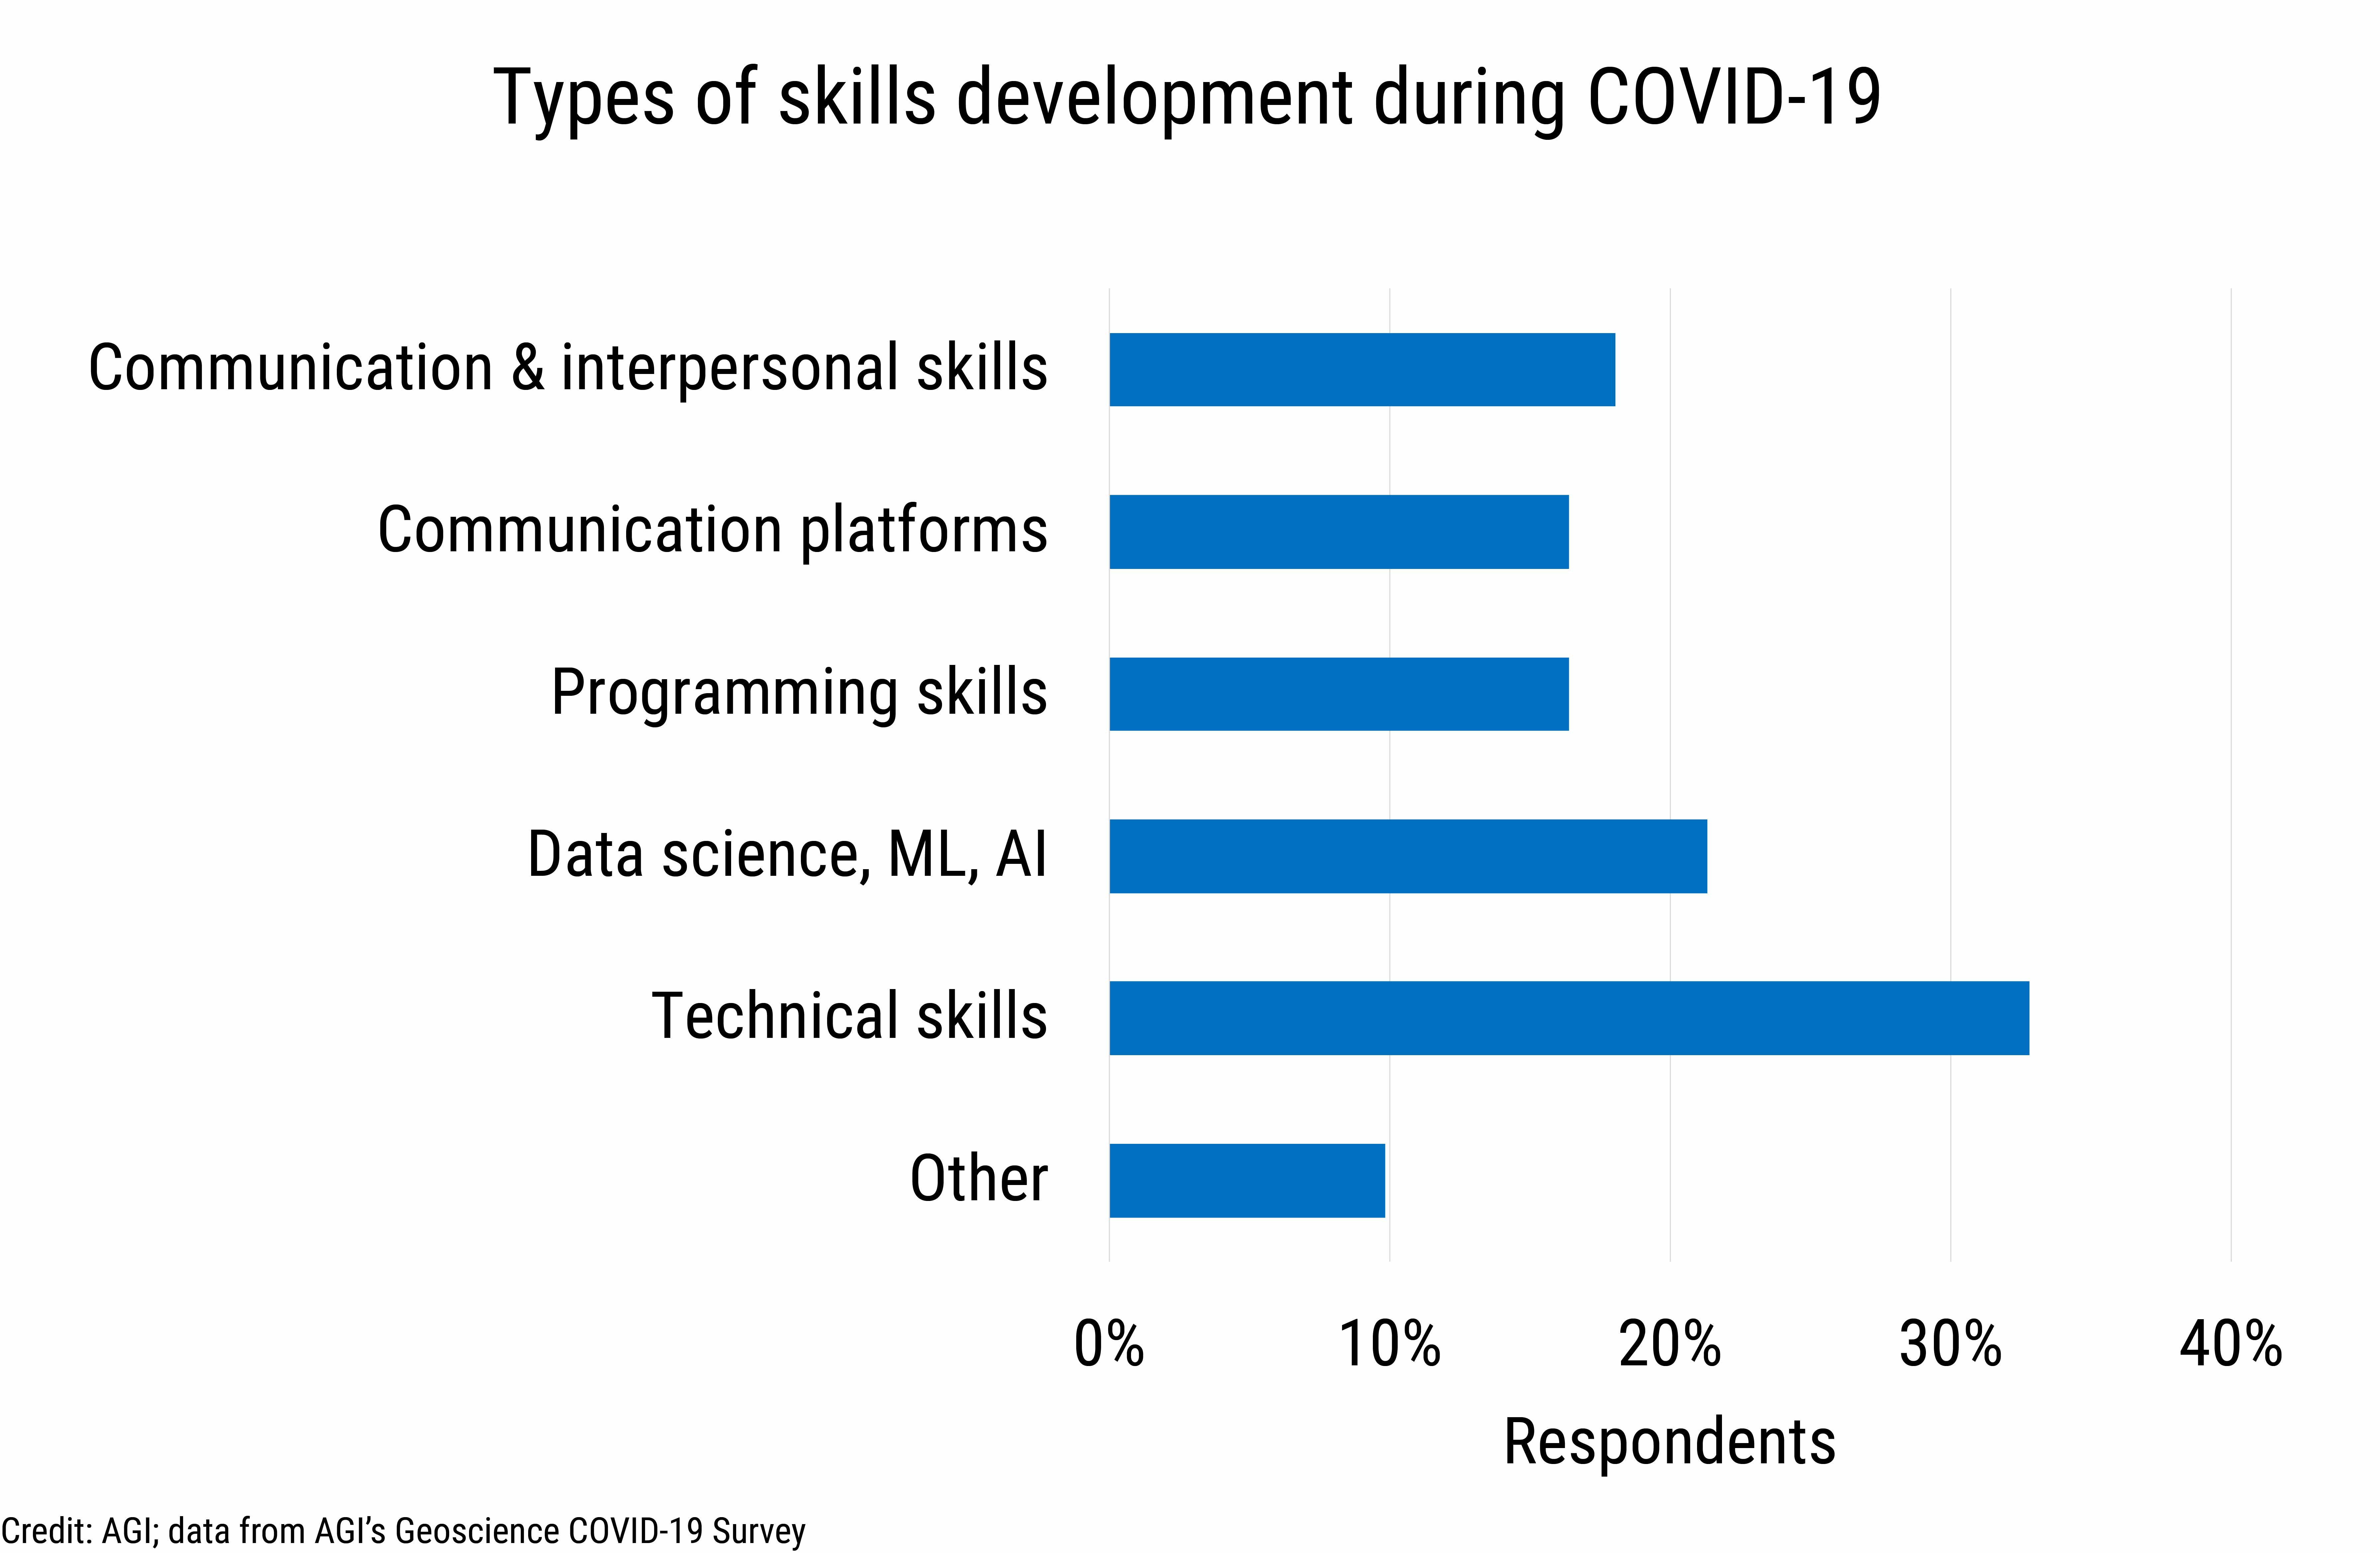 DB_2021-009 chart 01: Types of skills development during COVID-19 (Credit: AGI; data from AGI's Geoscience COVID-19 Survey)